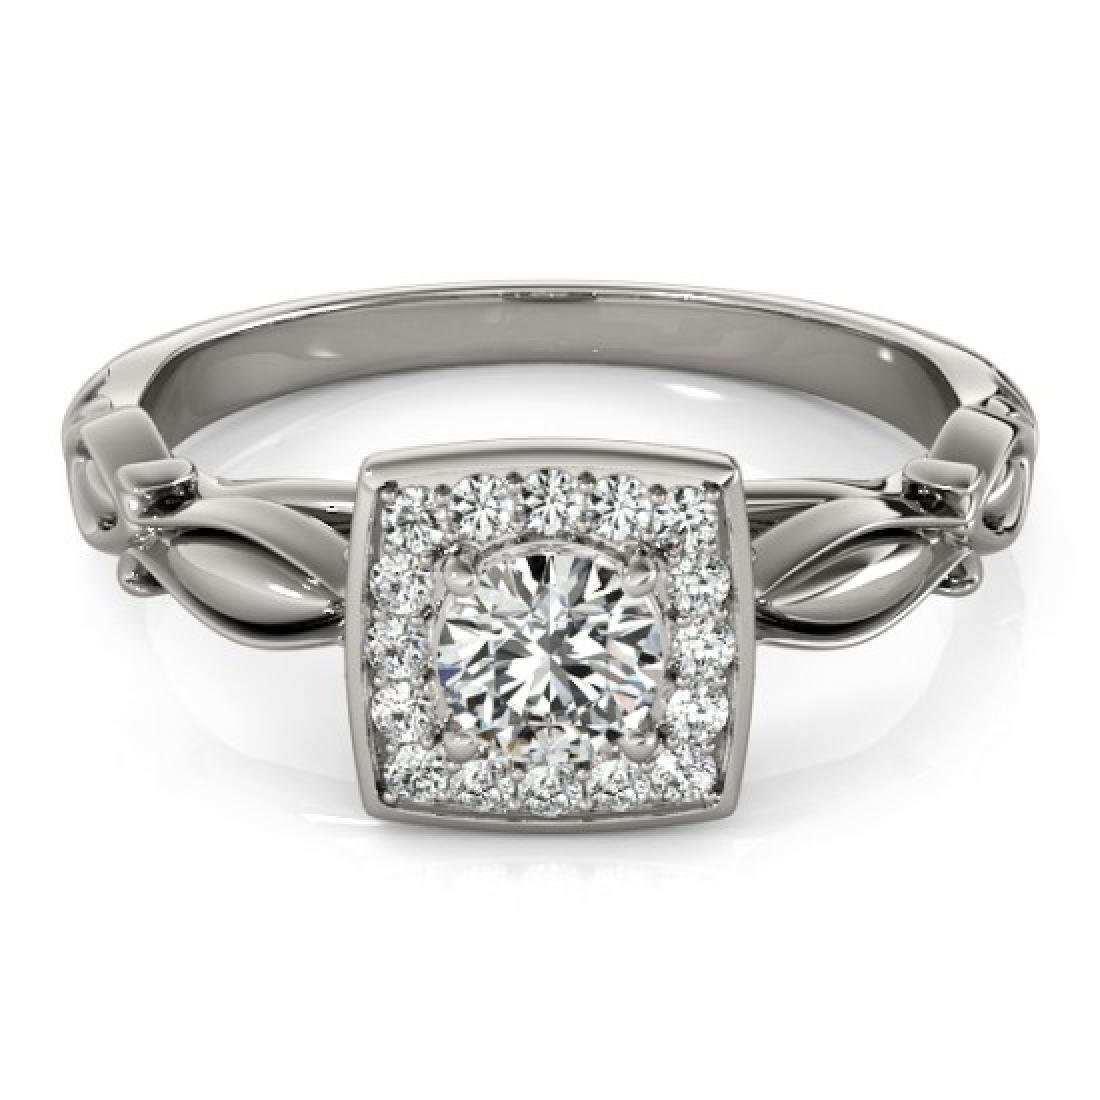 0.55 CTW Certified VS/SI Diamond Solitaire Halo Ring